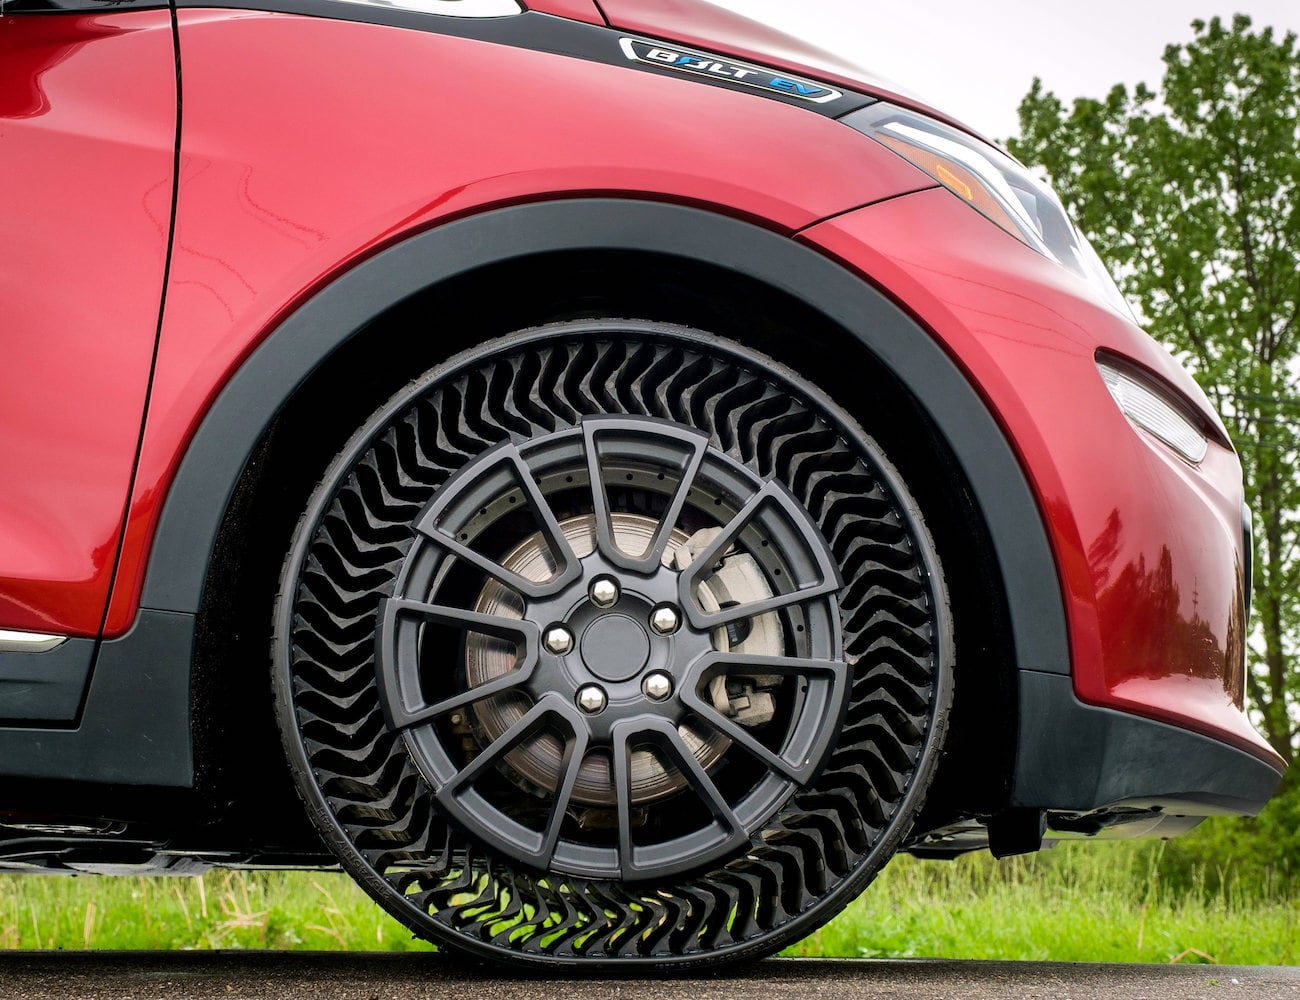 Michelin Uptis Airless Vehicle Wheel makes it impossible for your car's wheels to go flat